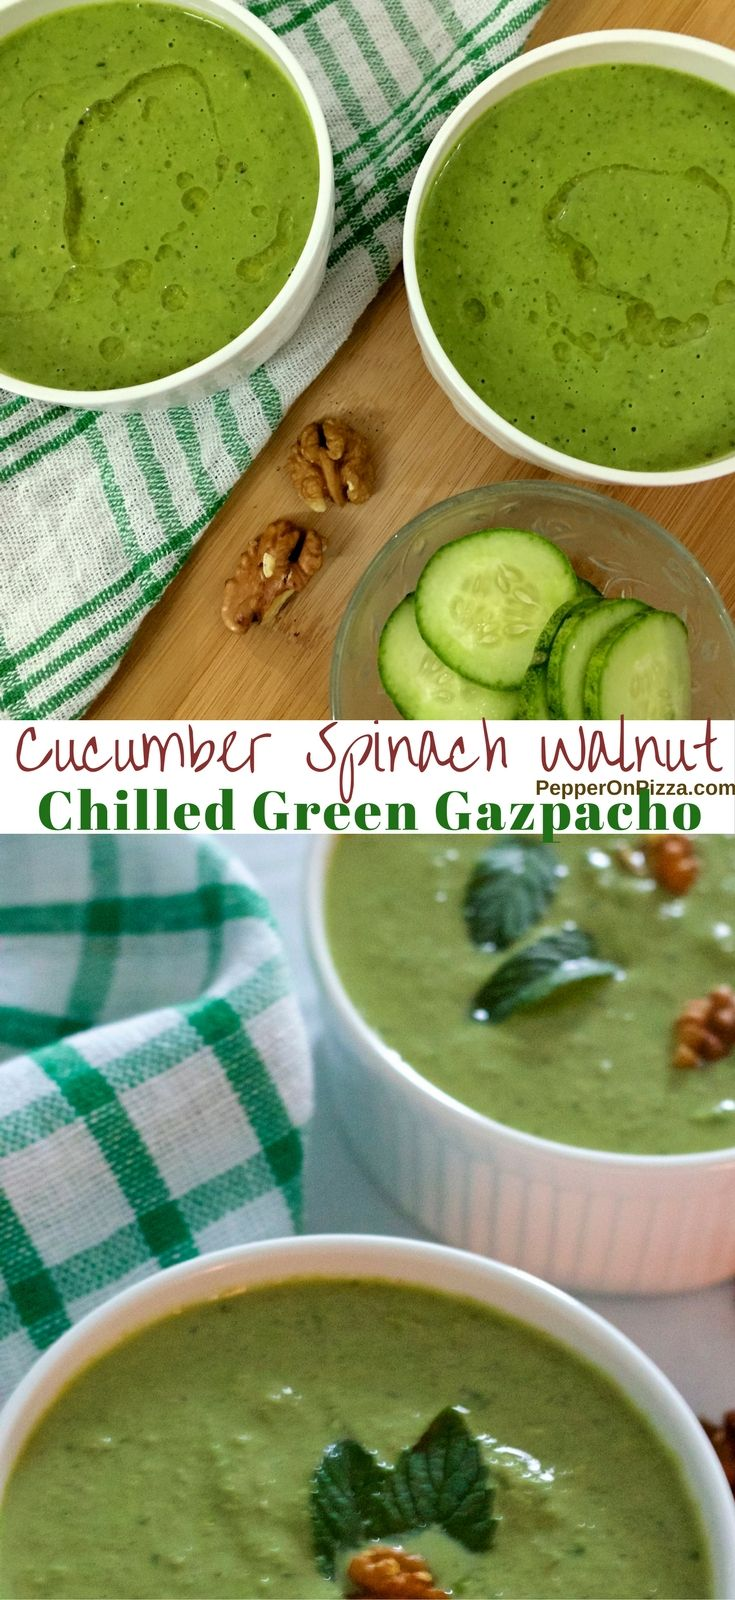 Refreshing Cucumber Spinach Walnut Chilled Green Gazpacho from Yotam Ottolenghi's Recipe in the Plenty Cookbook. Delicious Health in a Bowl! via @sujatashukla